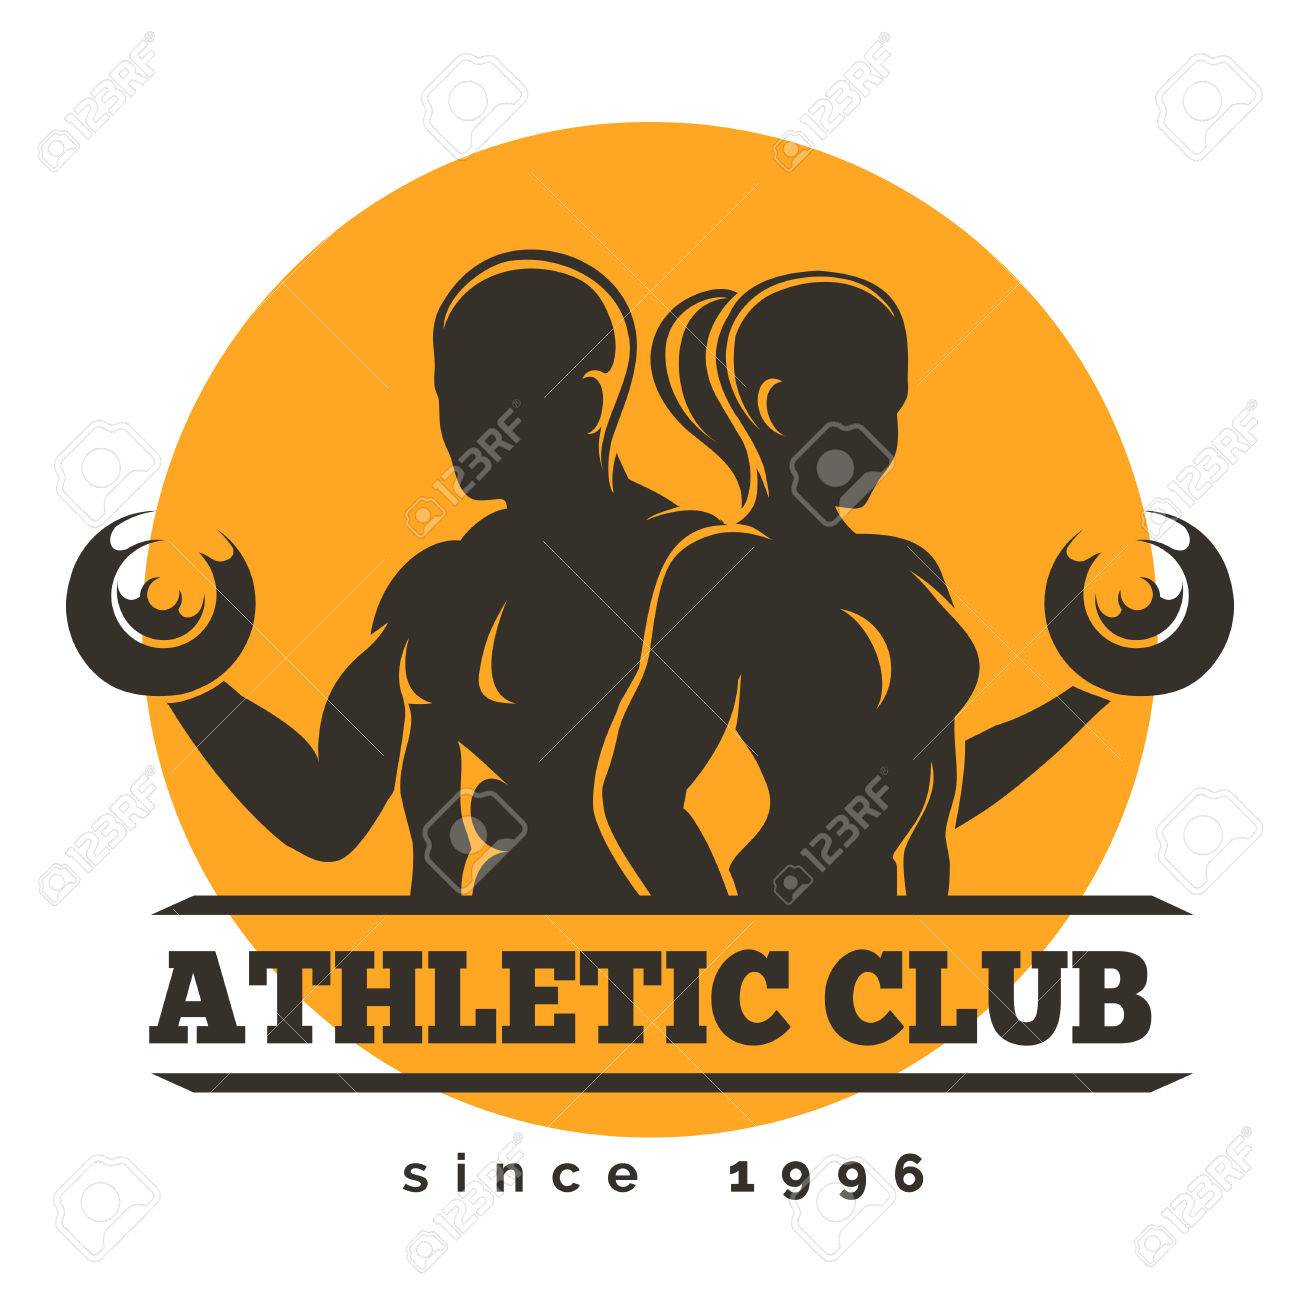 Sport, Gym or Athletic Club Emblem. Woman and Man holds dumbbells. Free font used. Isolated on white. - 53666580